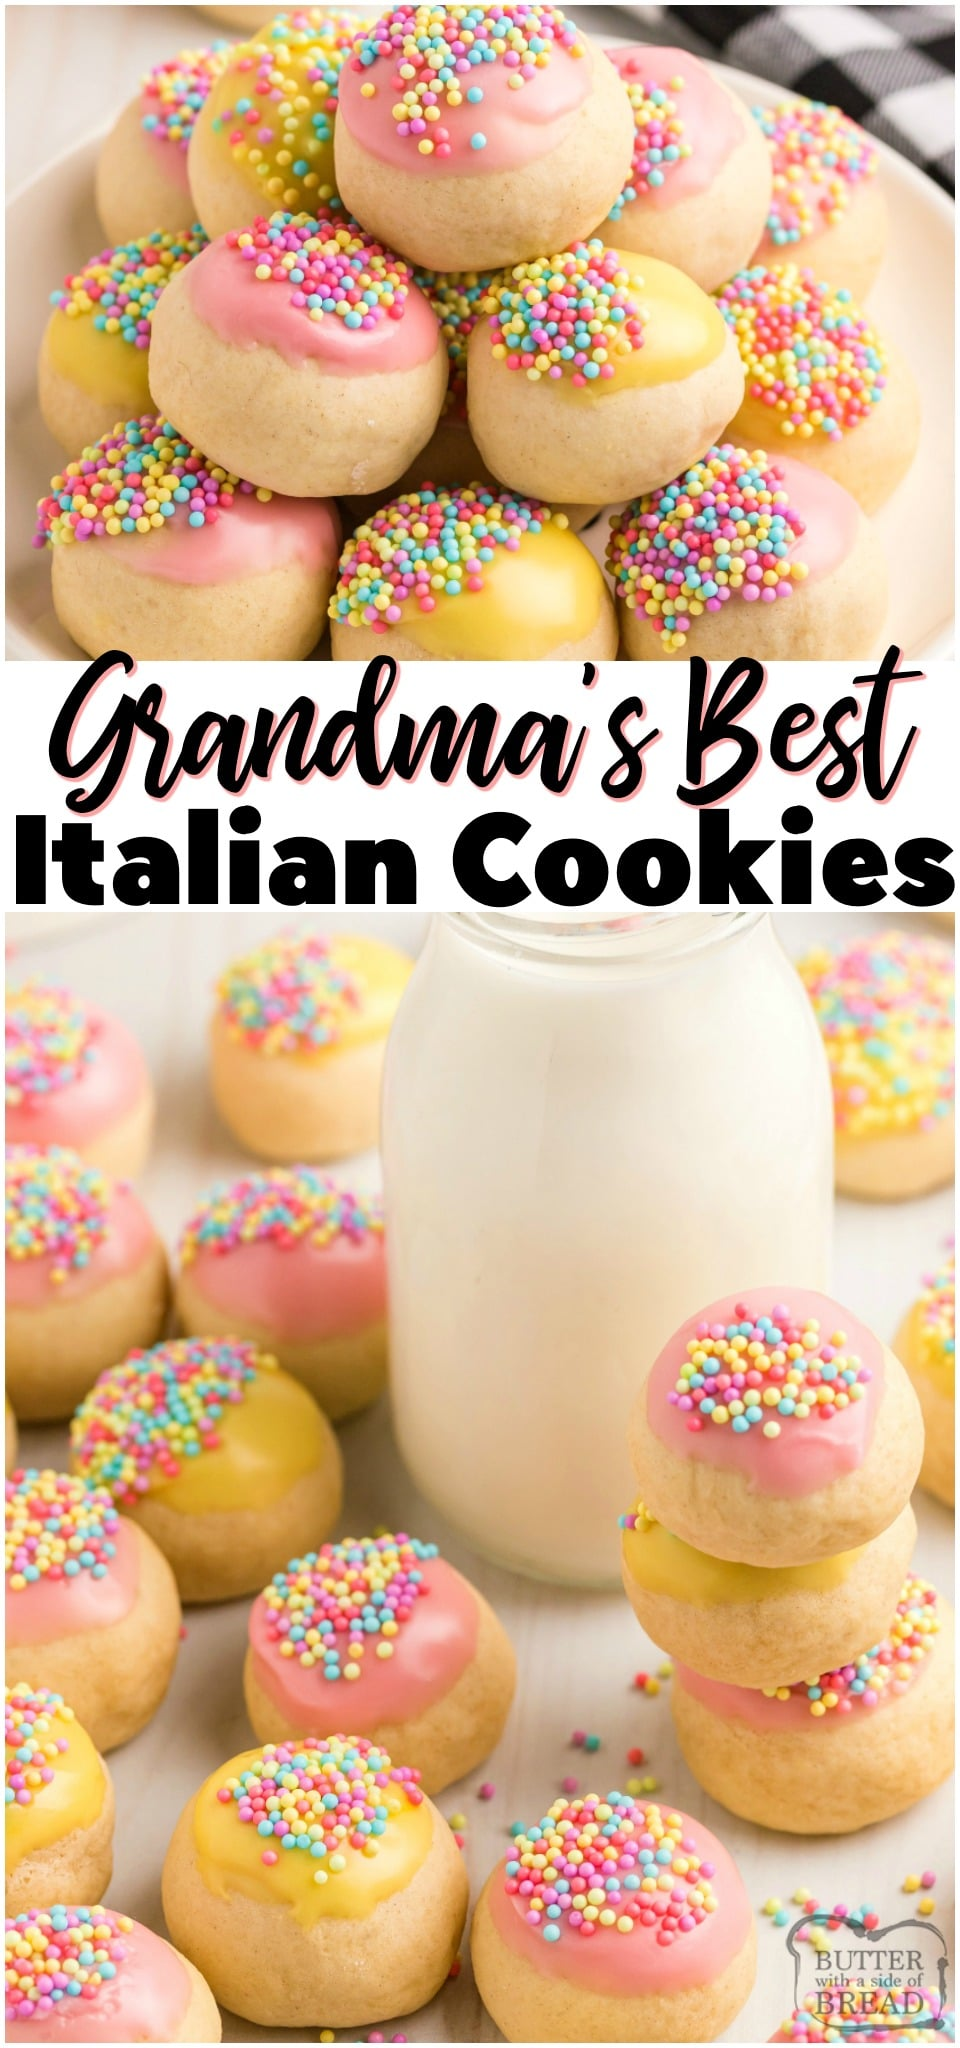 Italian cookies with frosting are perfectly sweet and tender cookies with a simple vanilla glaze. Lovely Italian Cookies topped with a sweet glaze and colorful sprinkles for any occasion!